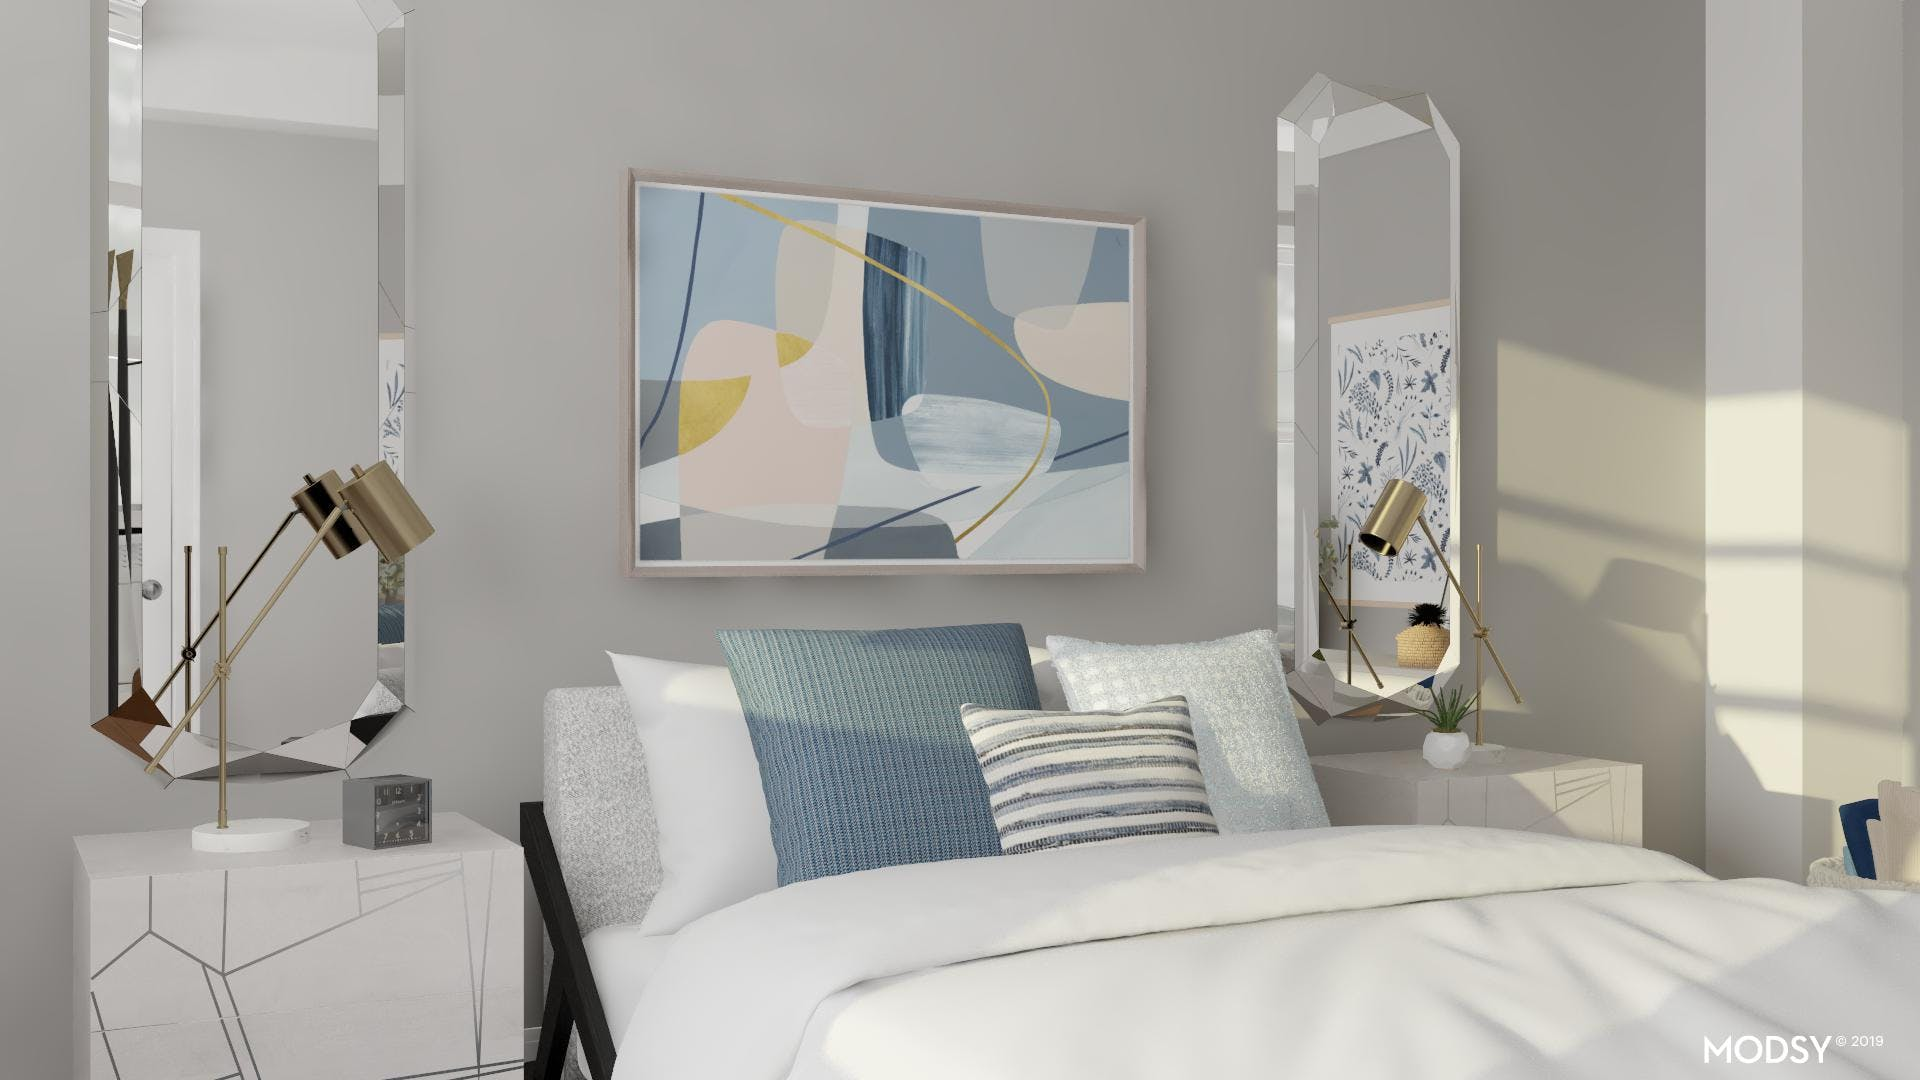 Creating a Focal Point in the Bedroom